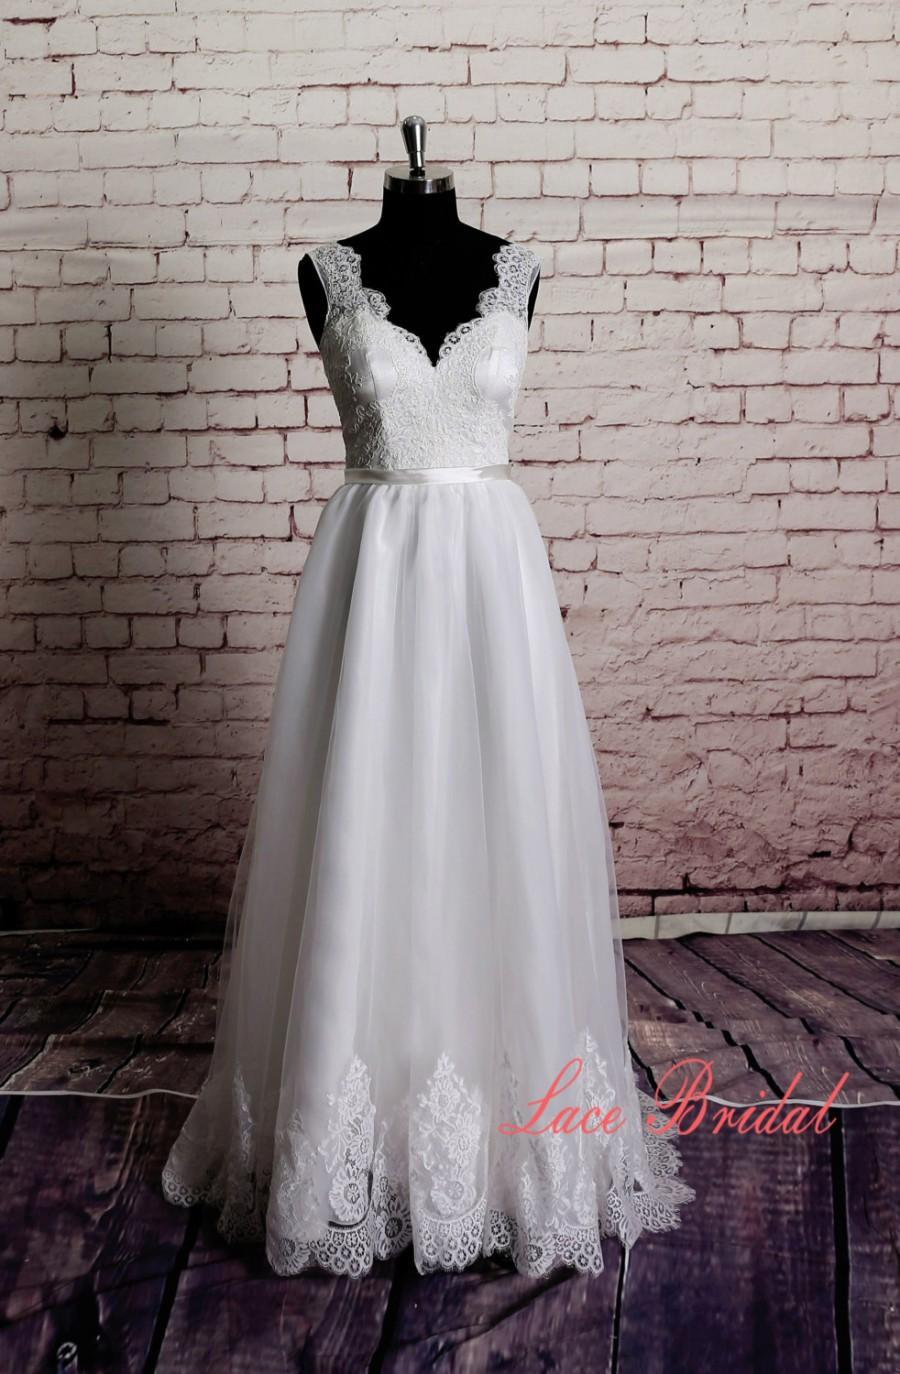 Mariage - Gorgeous Lace Wedding Dress Sheer Lace Neckline with Sweetheart Underlay and Open Back Design A-line Wedding Gown